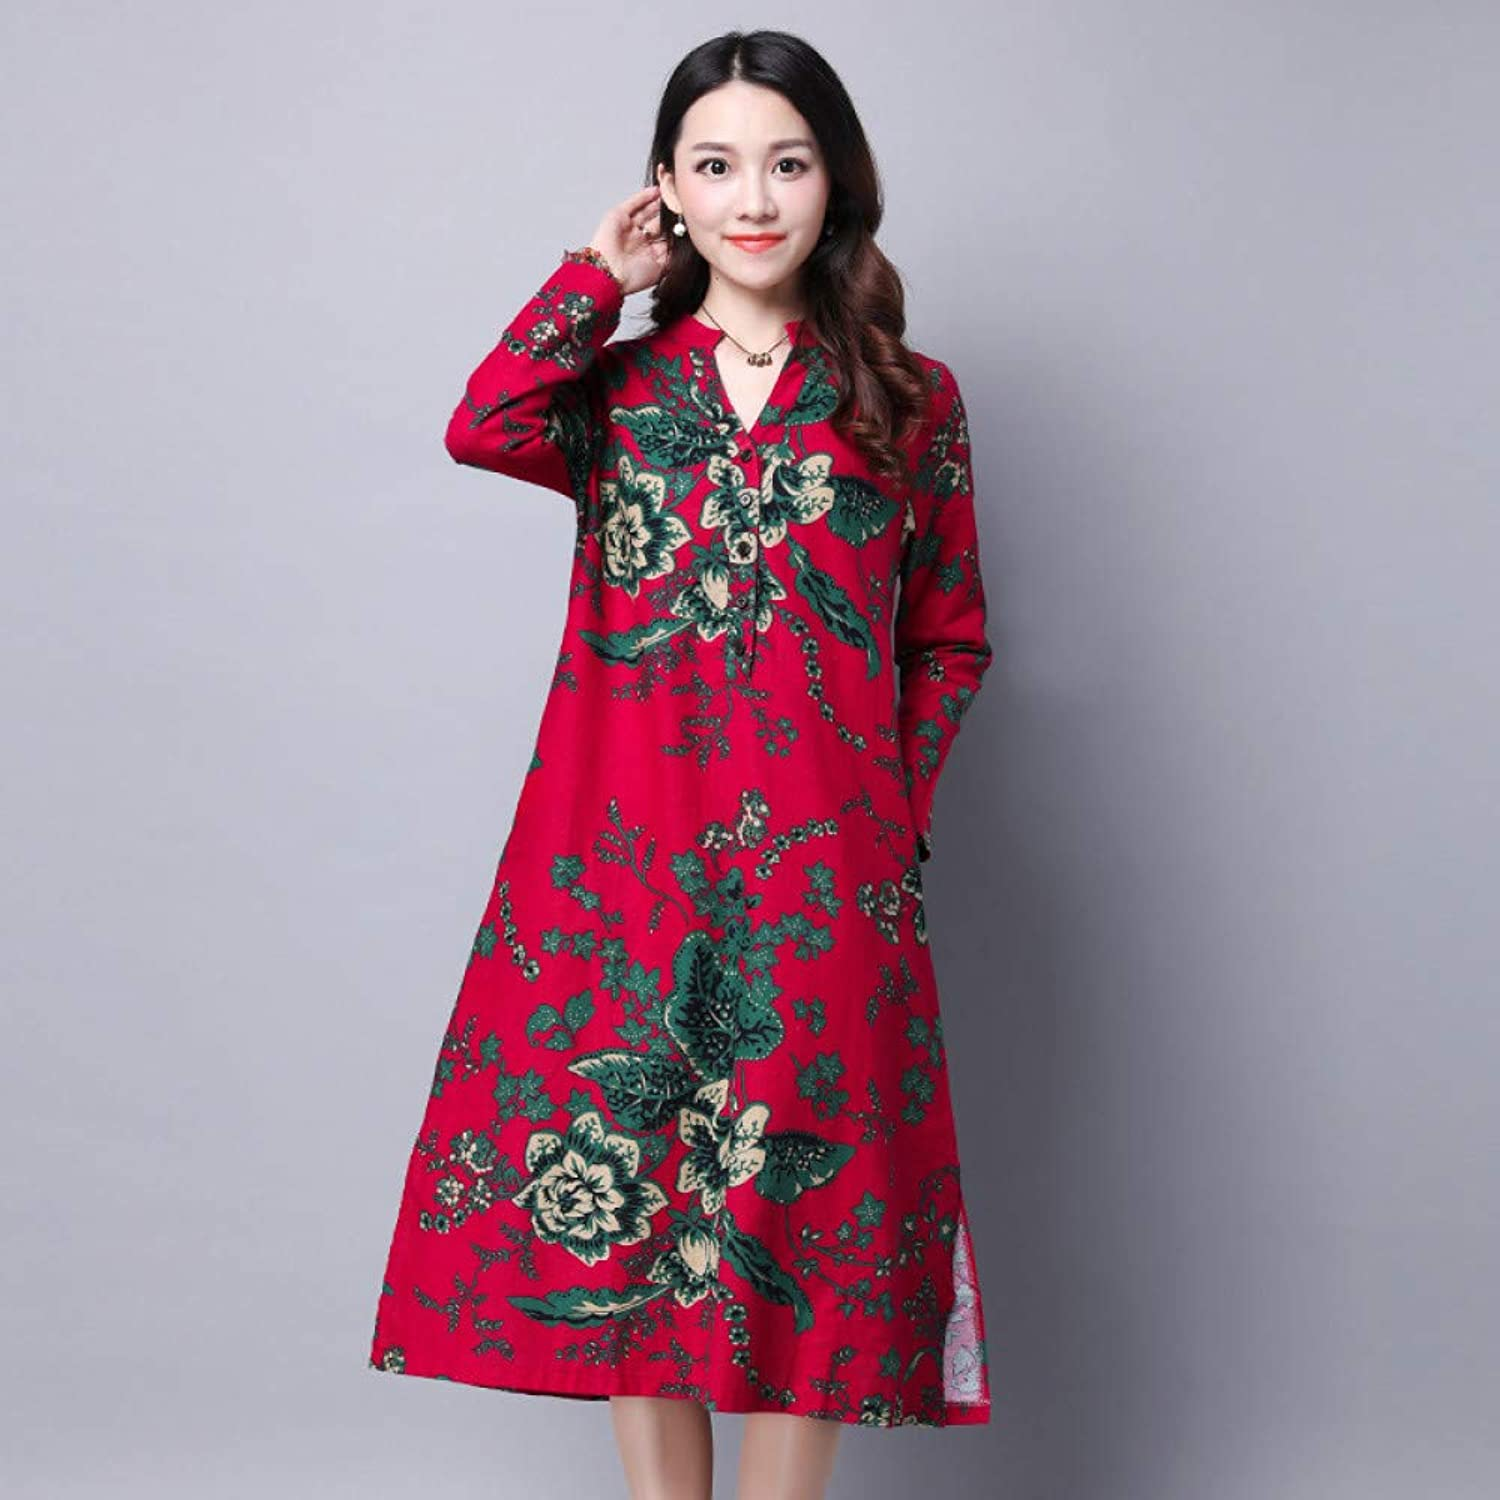 Cxlyq Dresses Cotton and Linen Printed Large Size Women's Dress Long Sleeve Loose Dress